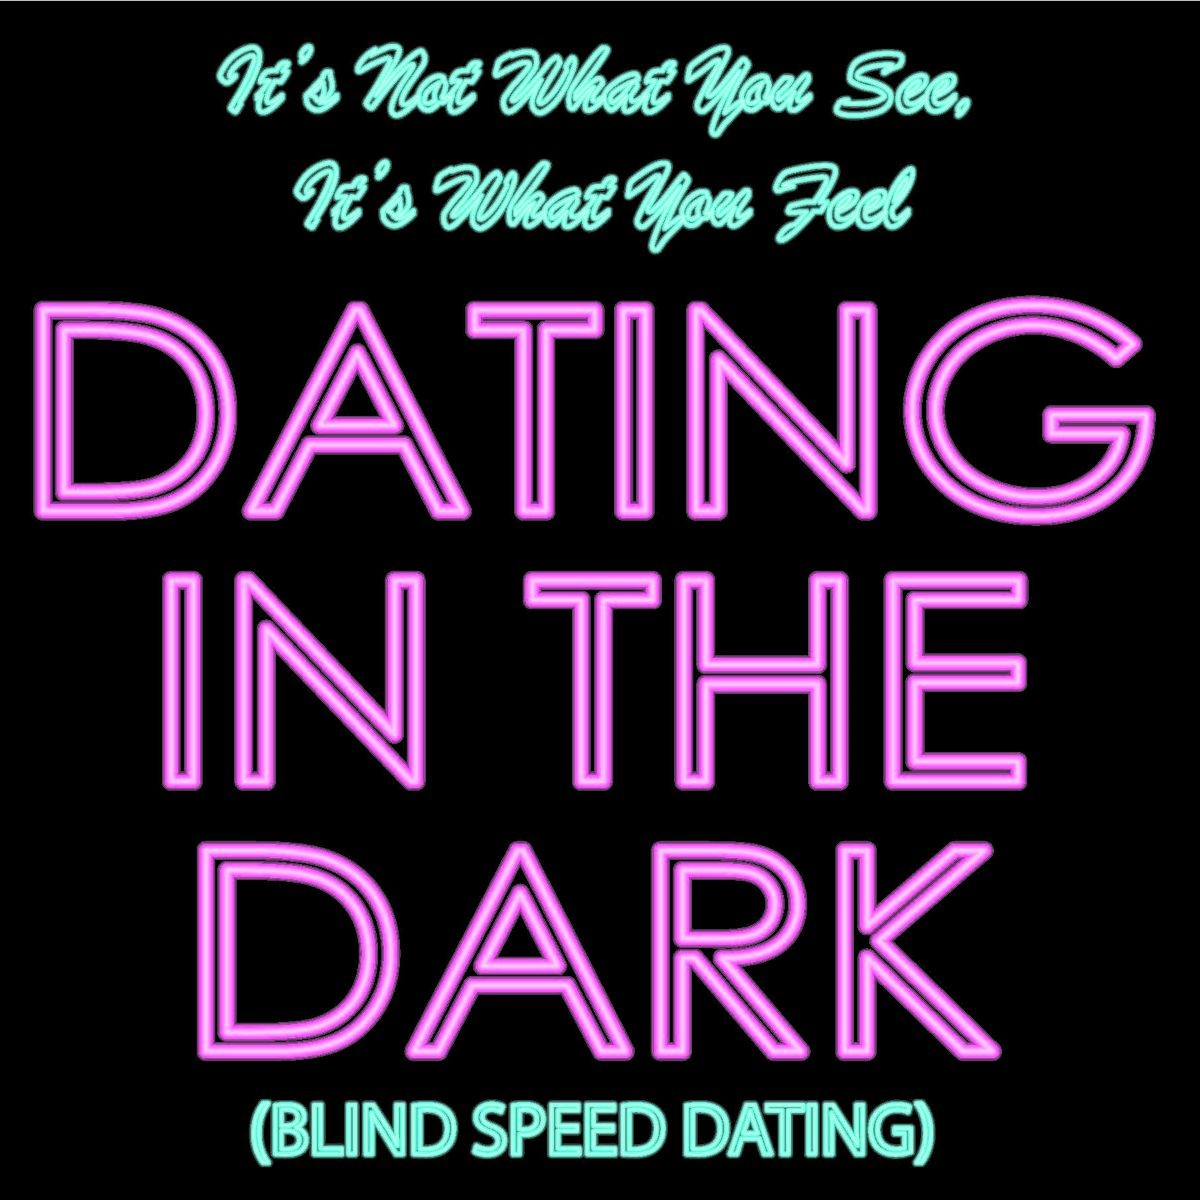 Dating in the Dark Feb 7.jpg